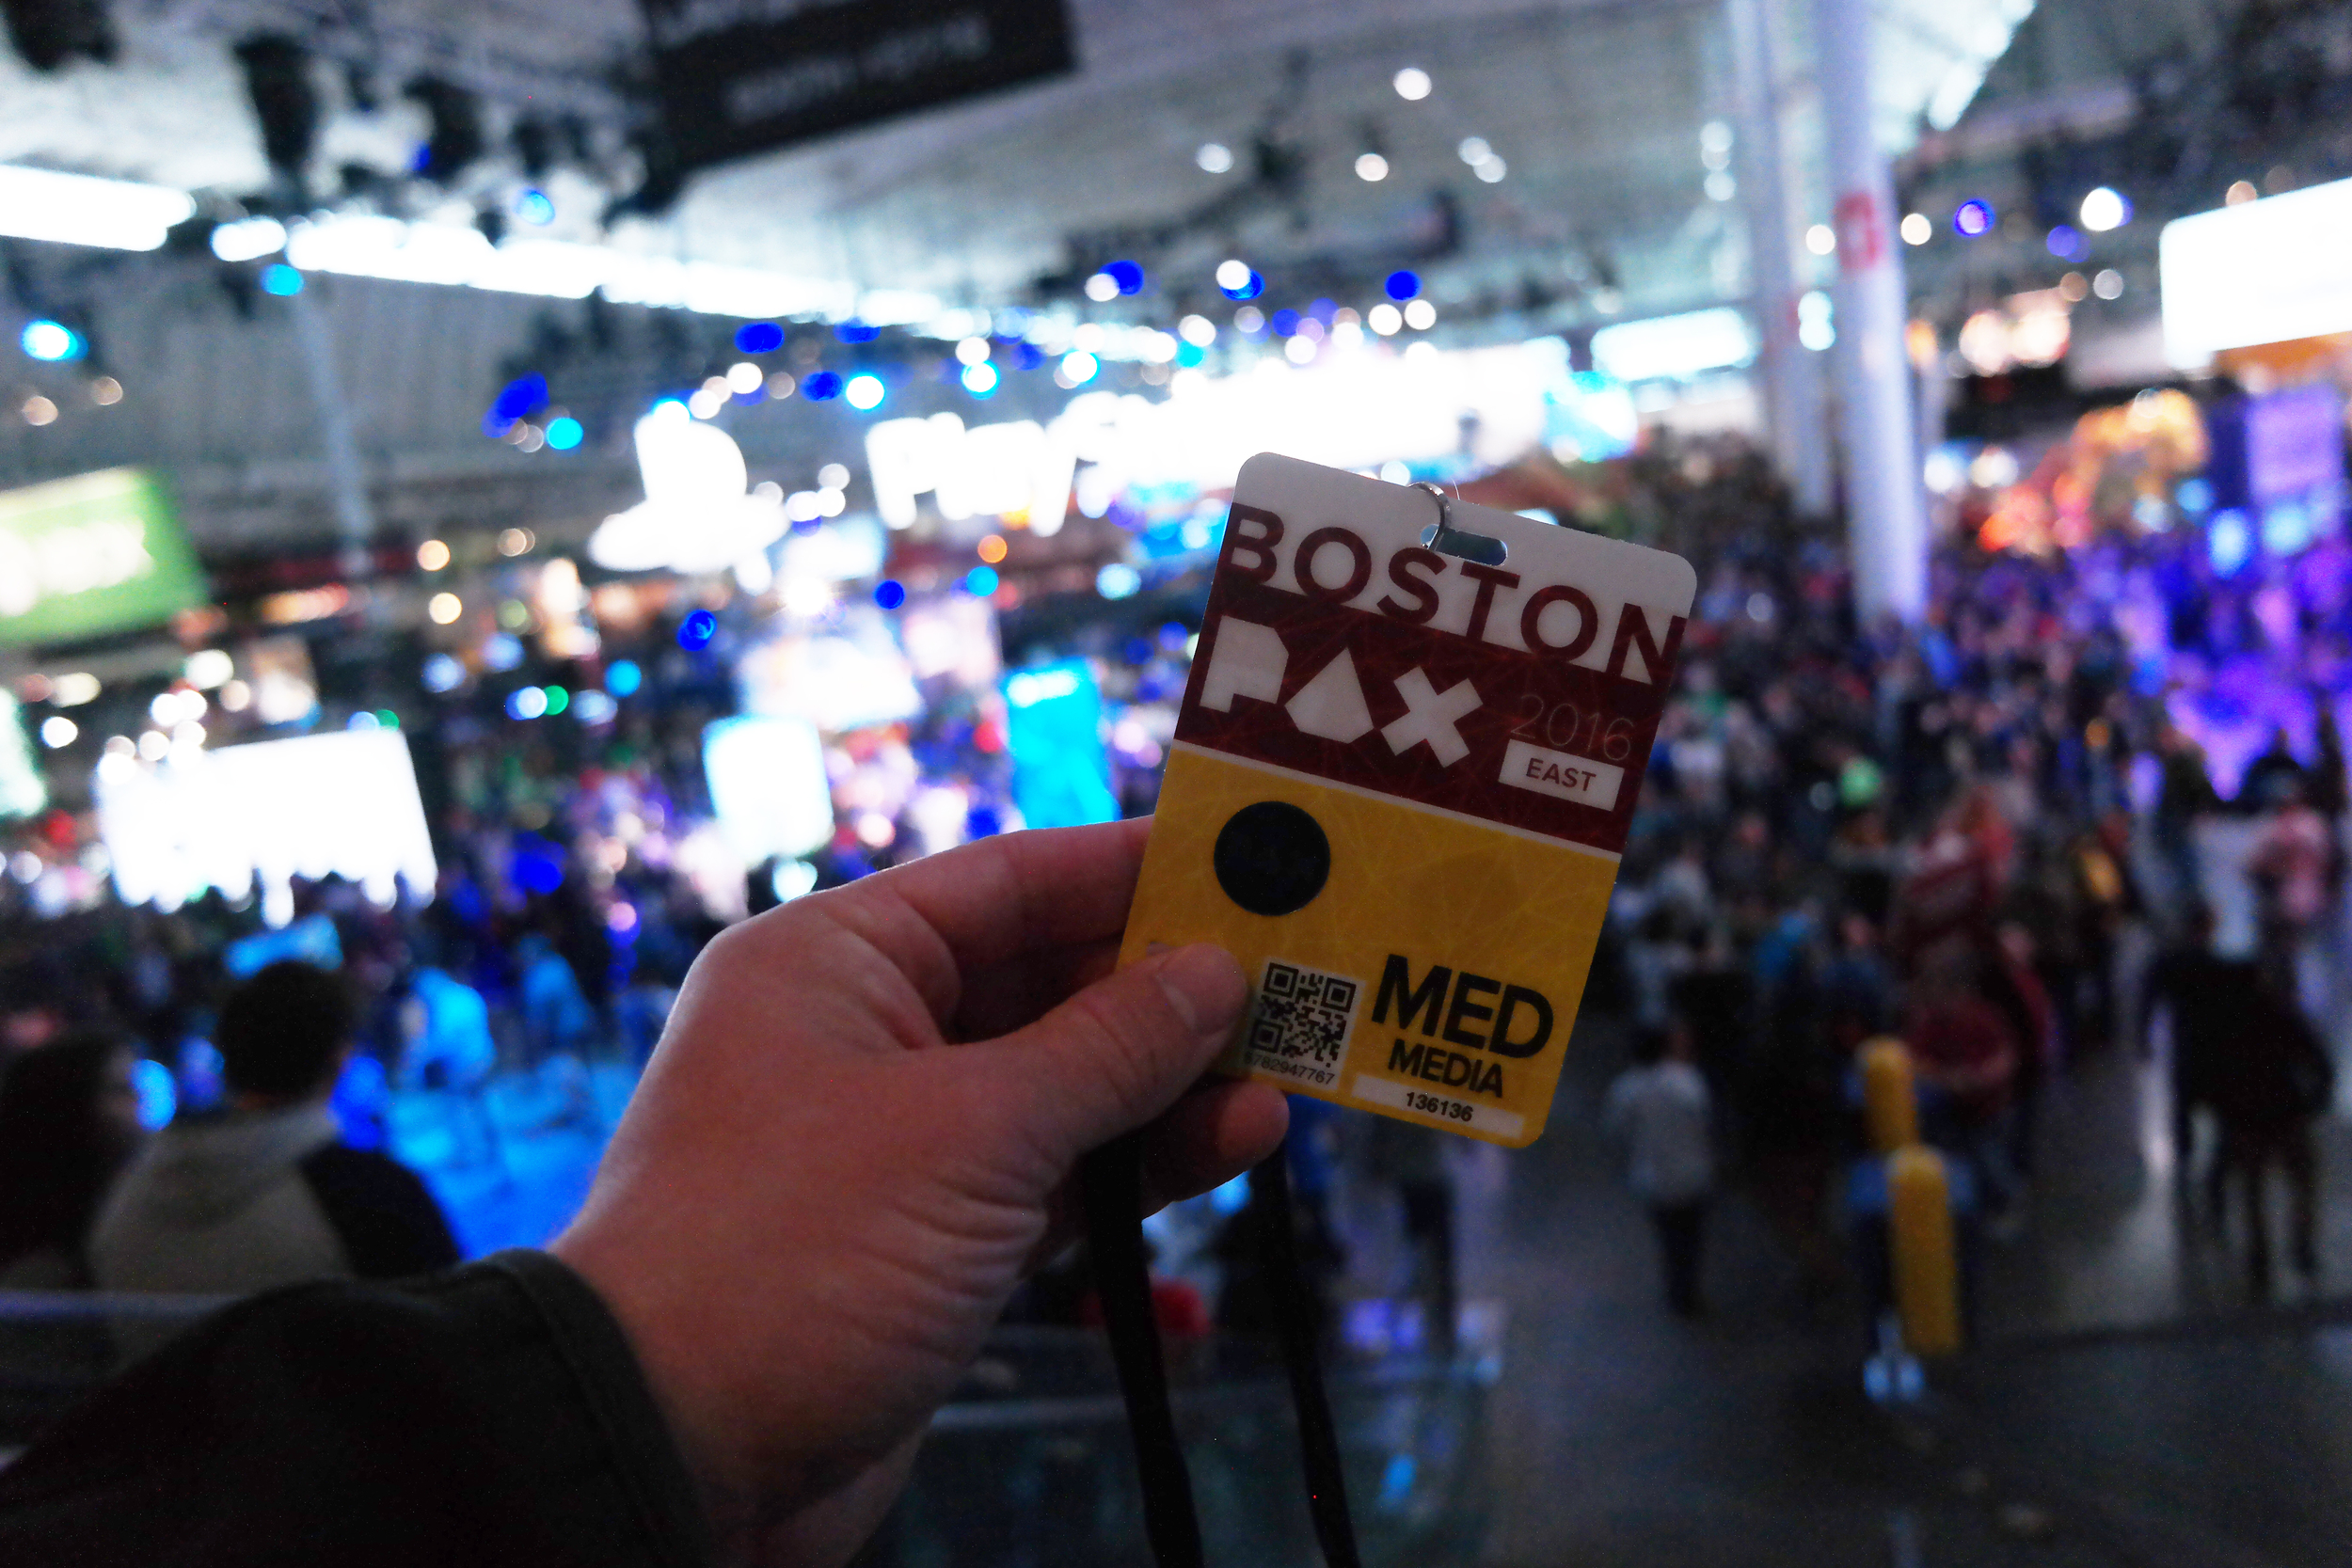 PAX East Media Badge 2016.JPG